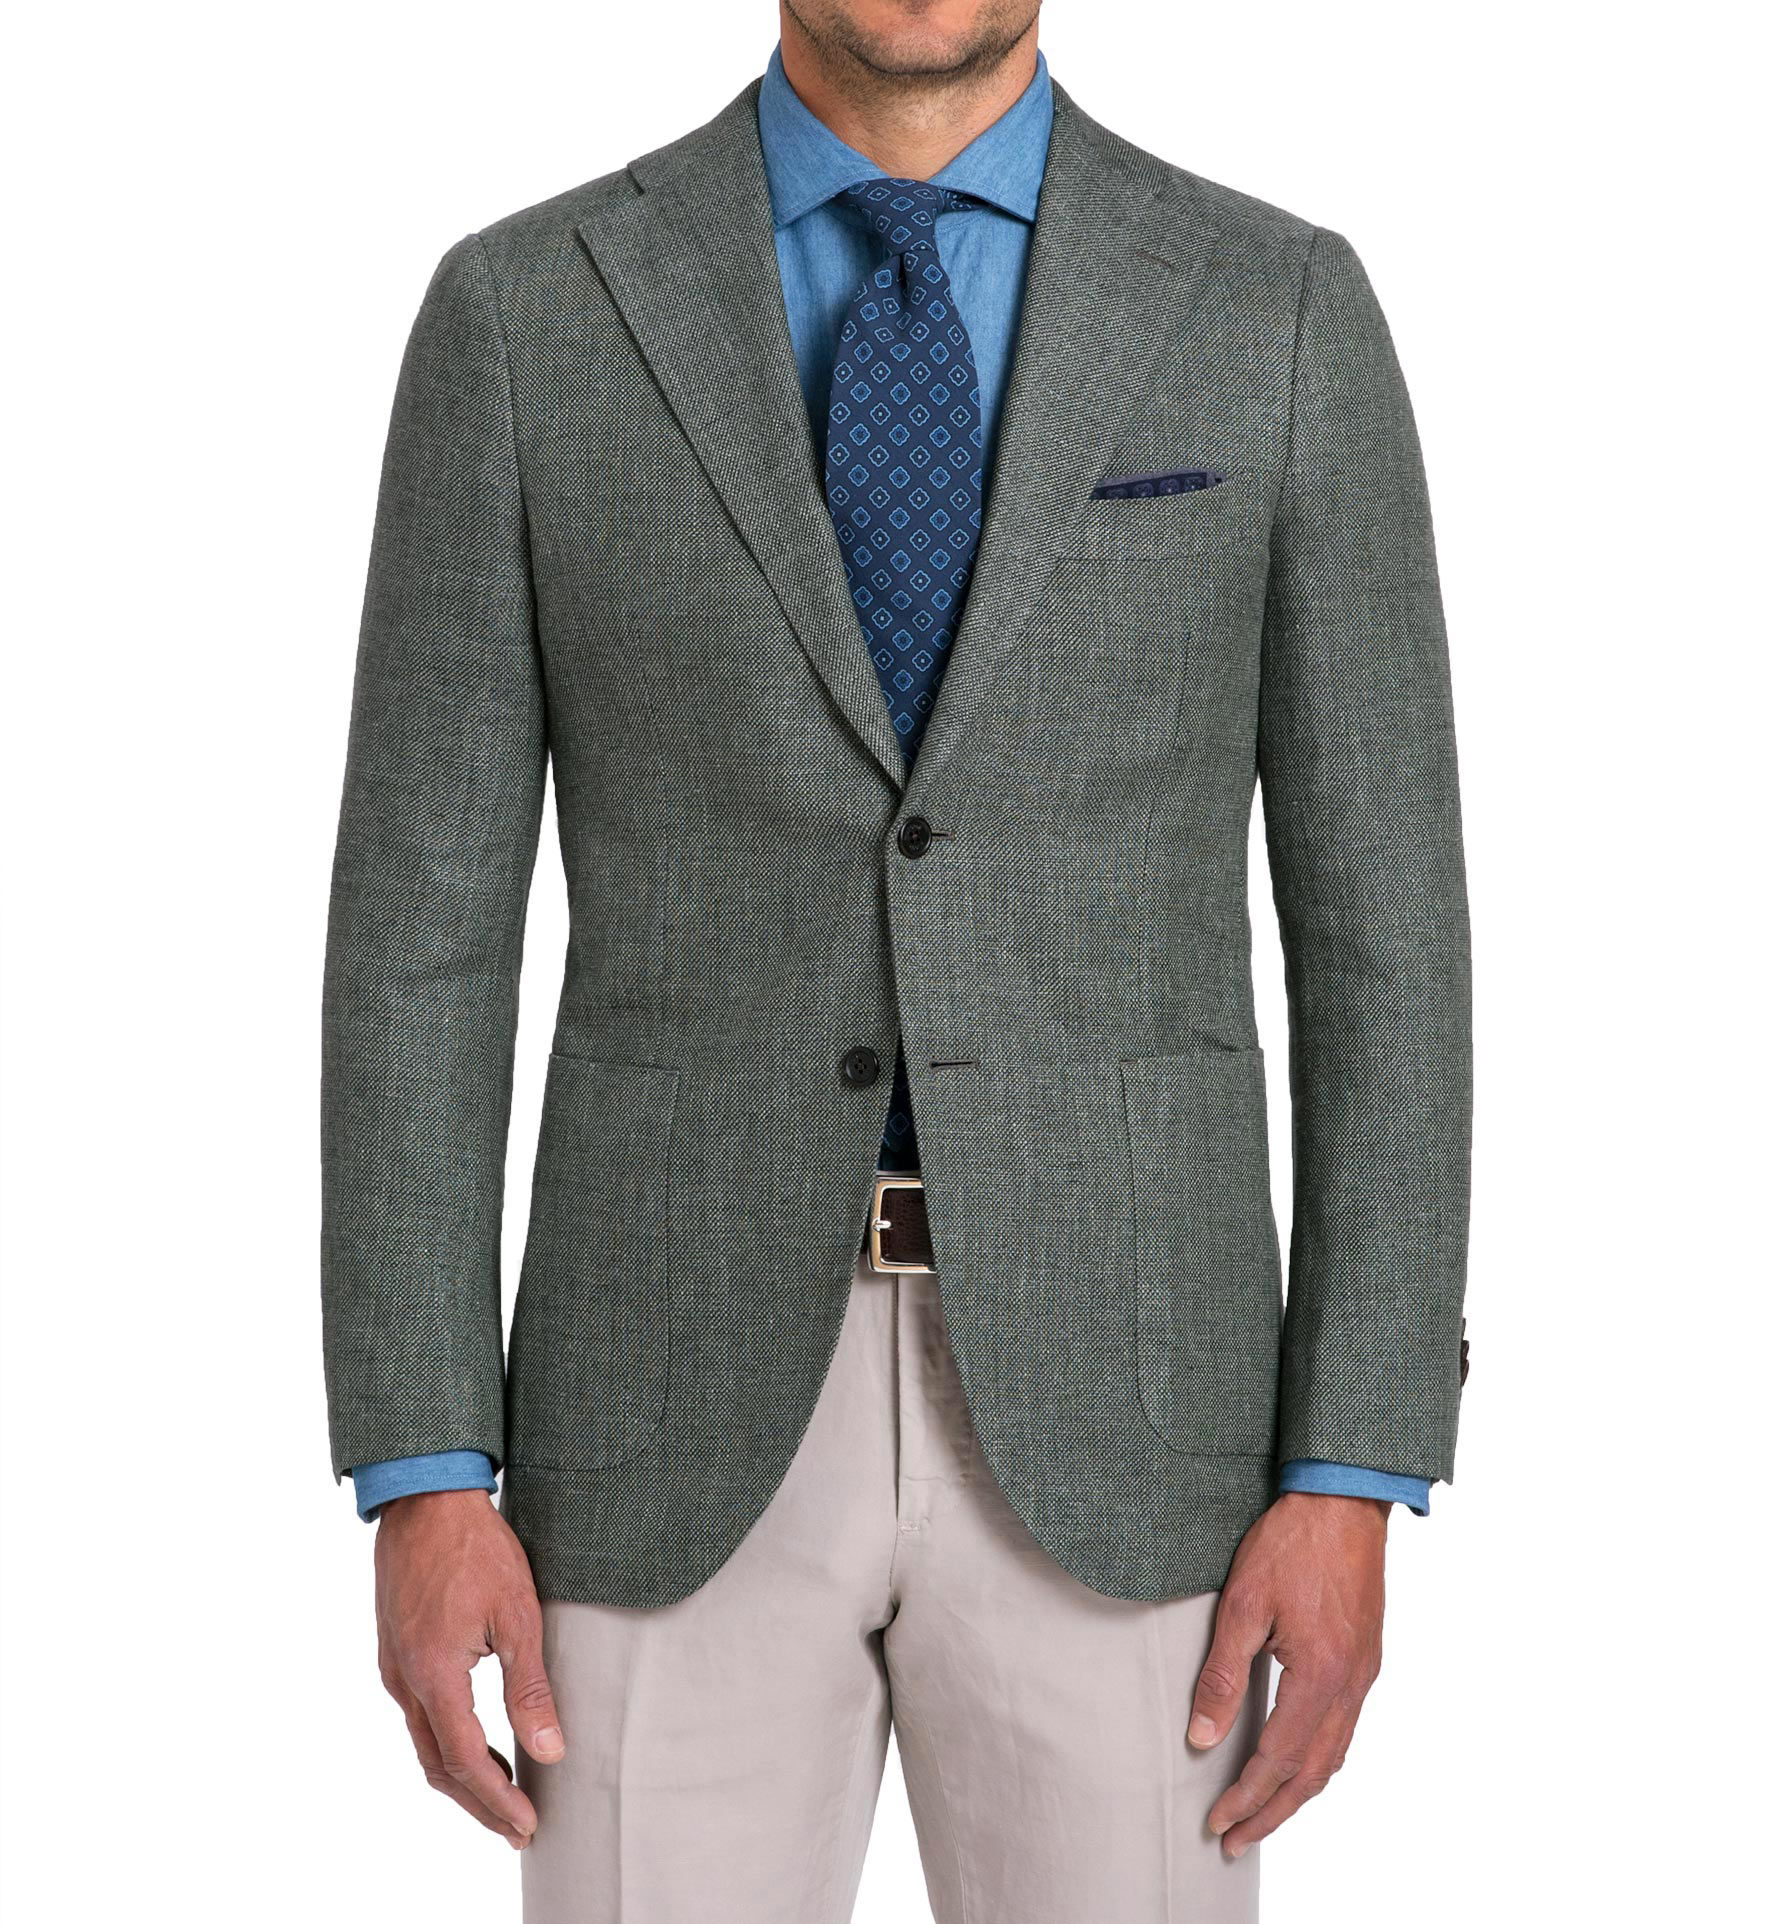 Zoom Image of Bedford Sage Linen and Wool Hopsack Jacket